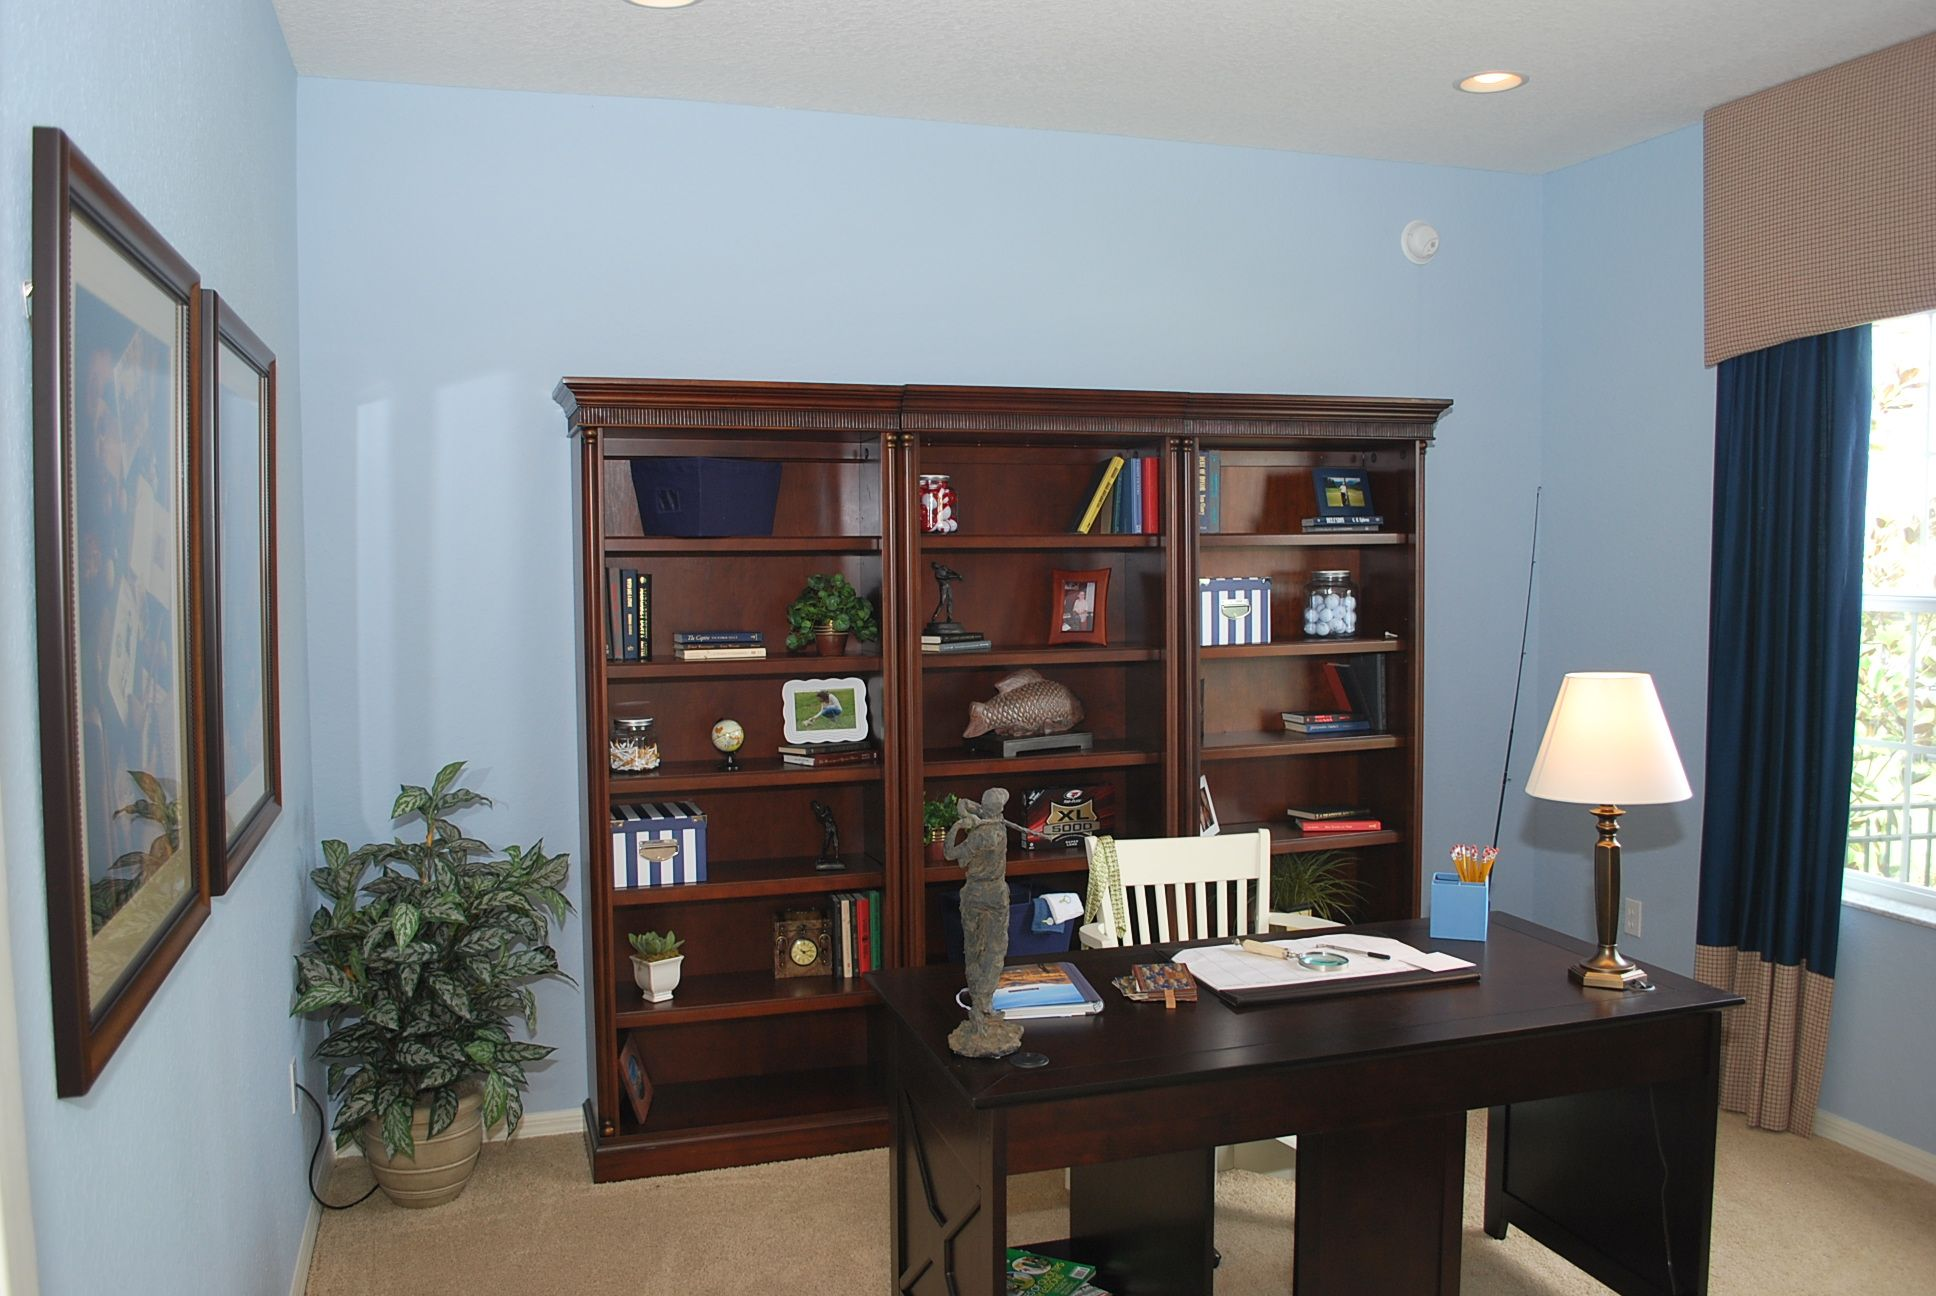 Blue is a calming color - and not just for baby's rooms!  It pairs well with dark wood in this room to create a home office with a soothing vibe.  Highland Homes Williamson II model home.